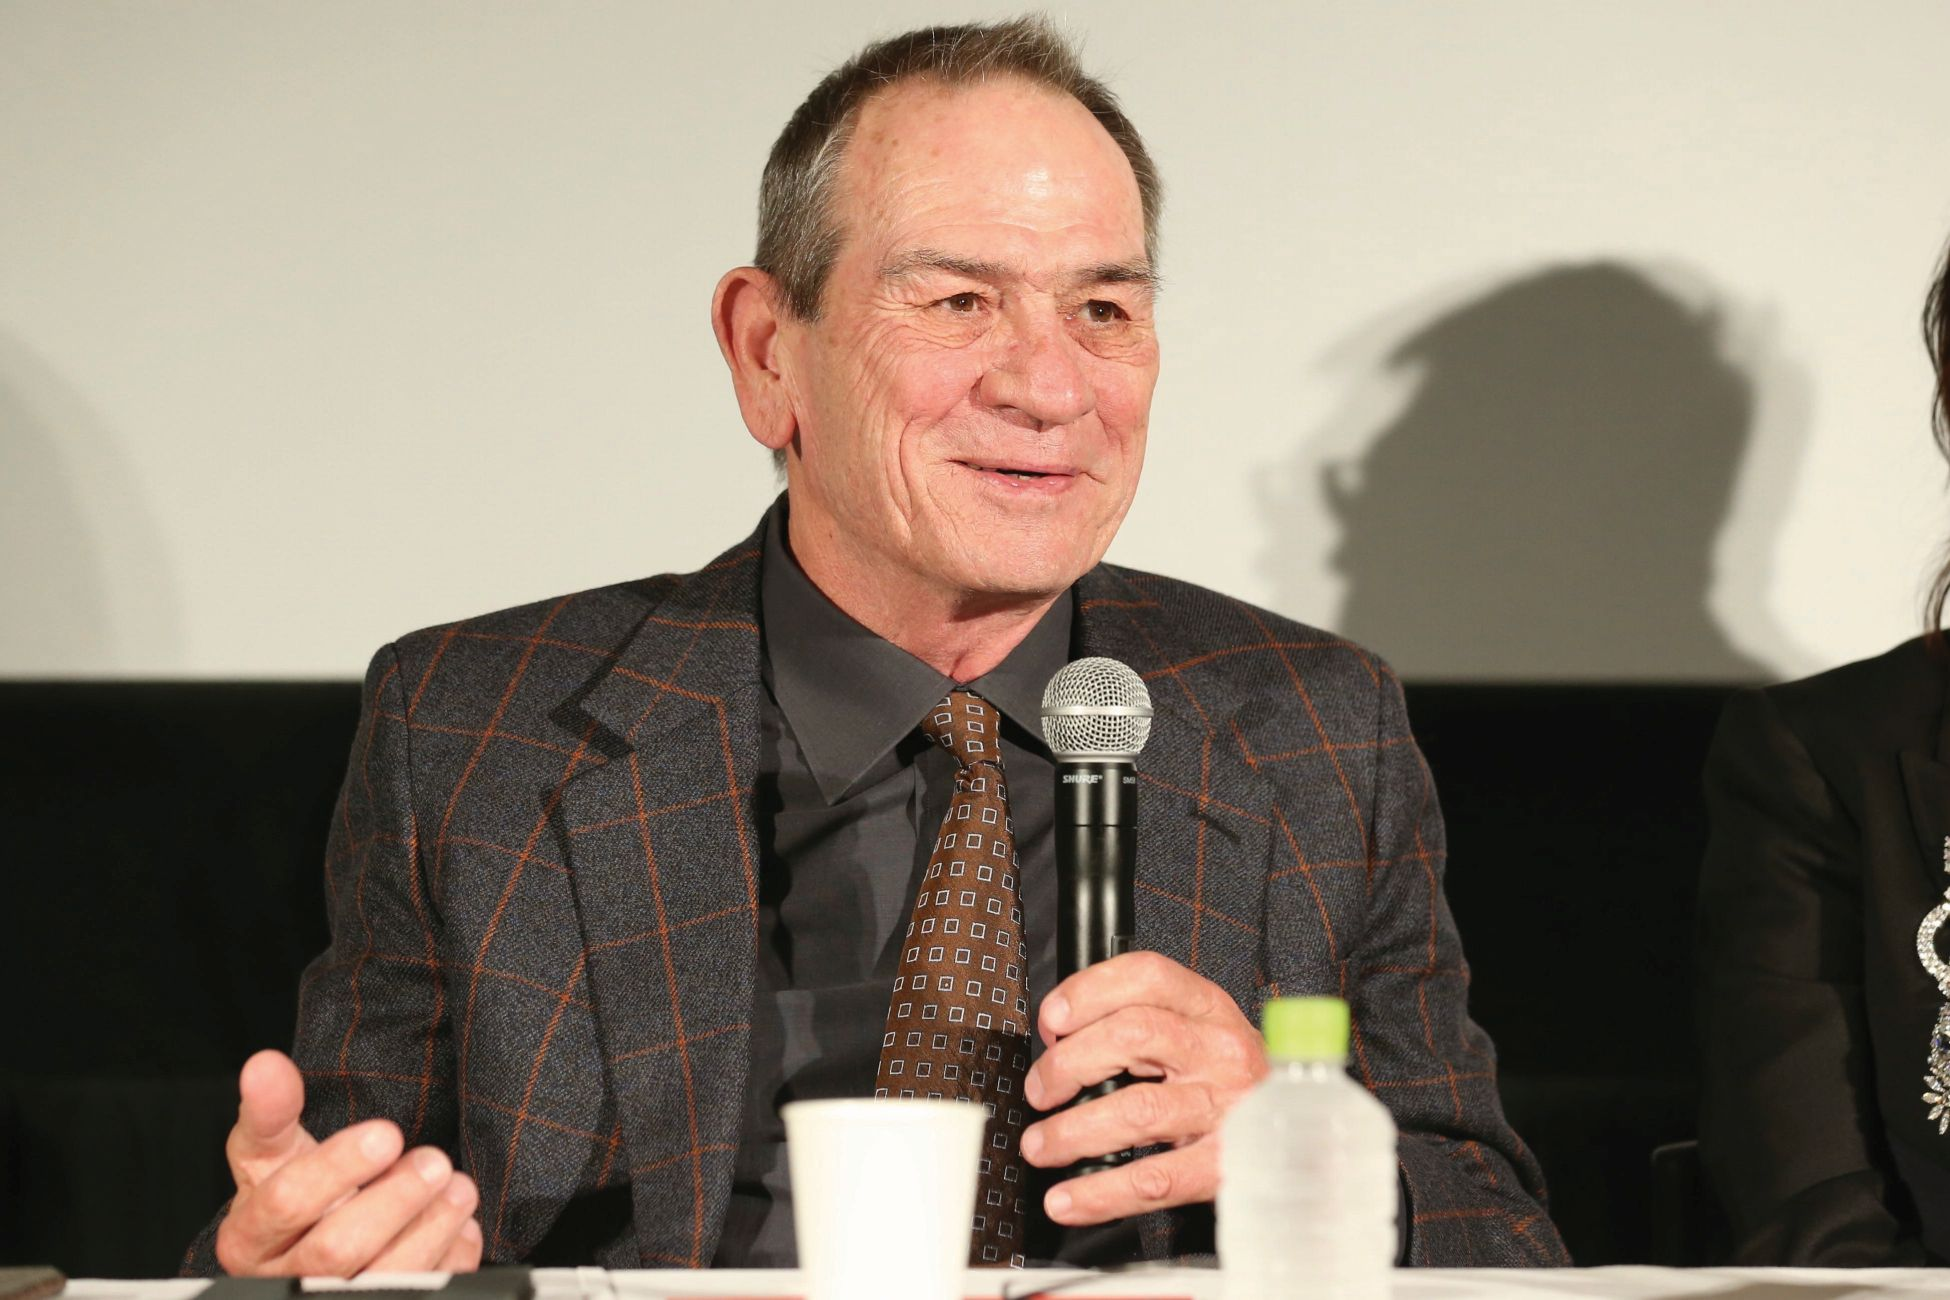 Tommy Lee Jones (c)2017 TIFF